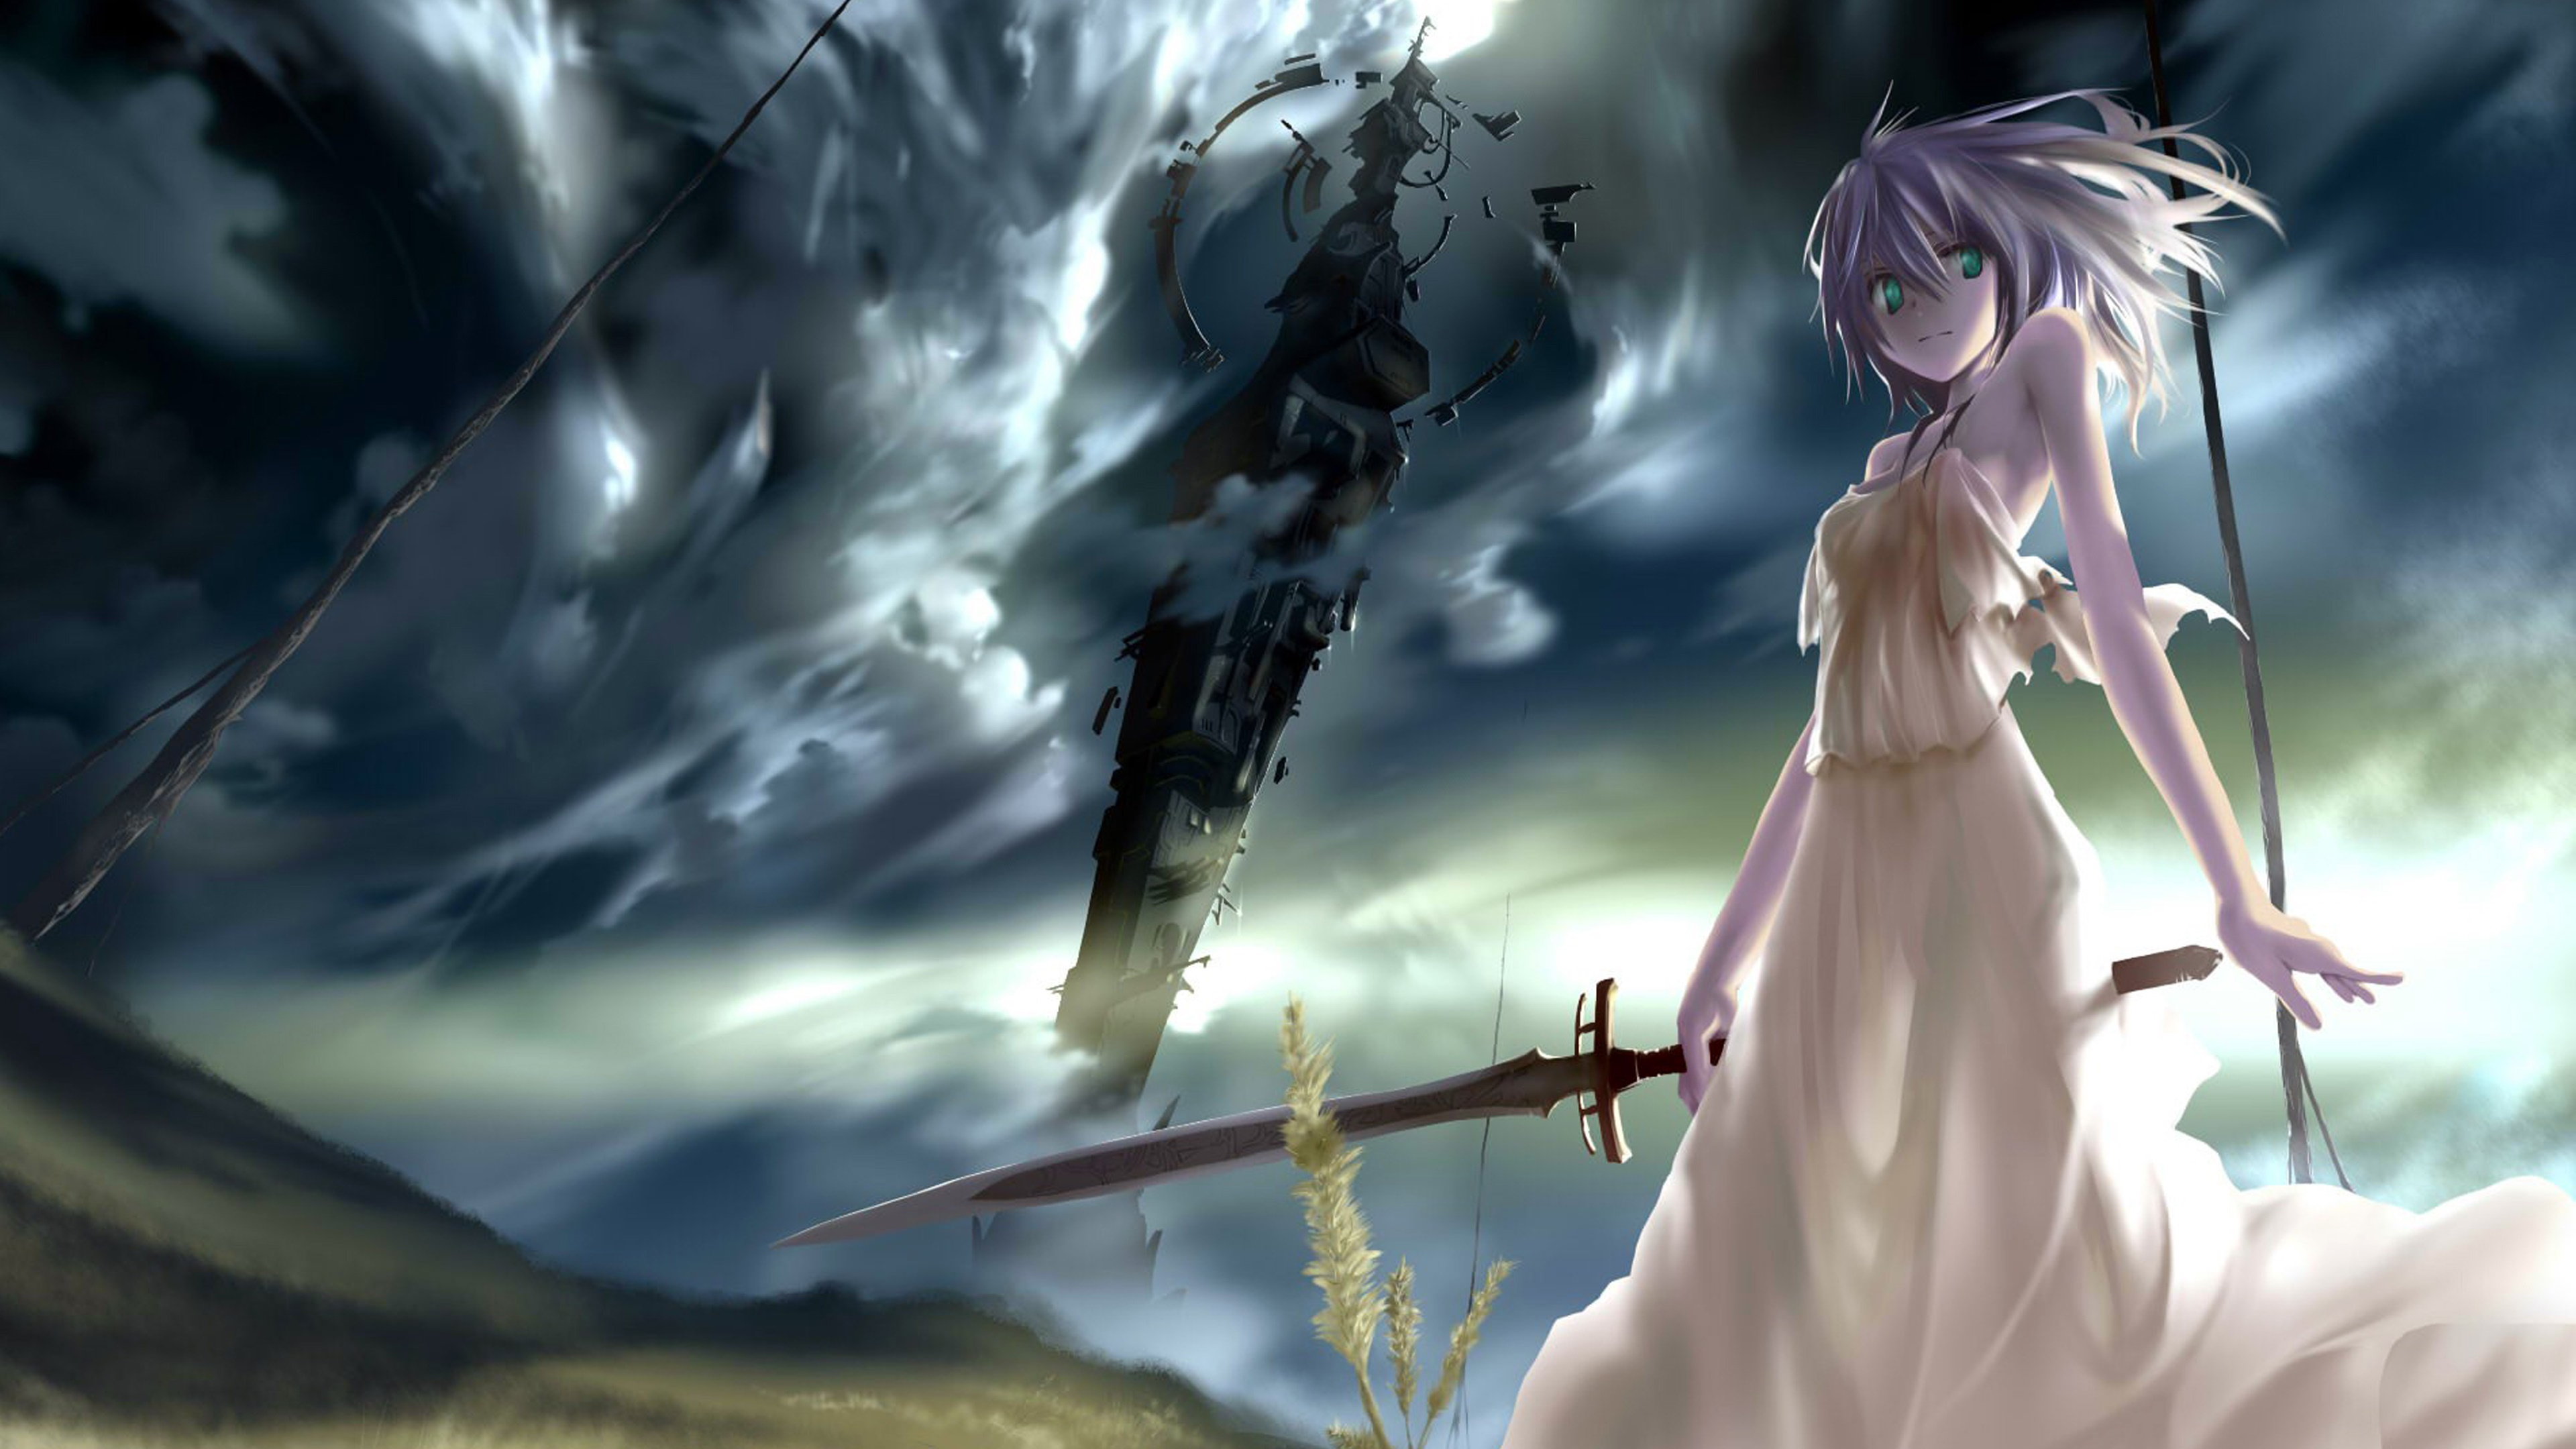 Psycho anime girl with sword wallpaper